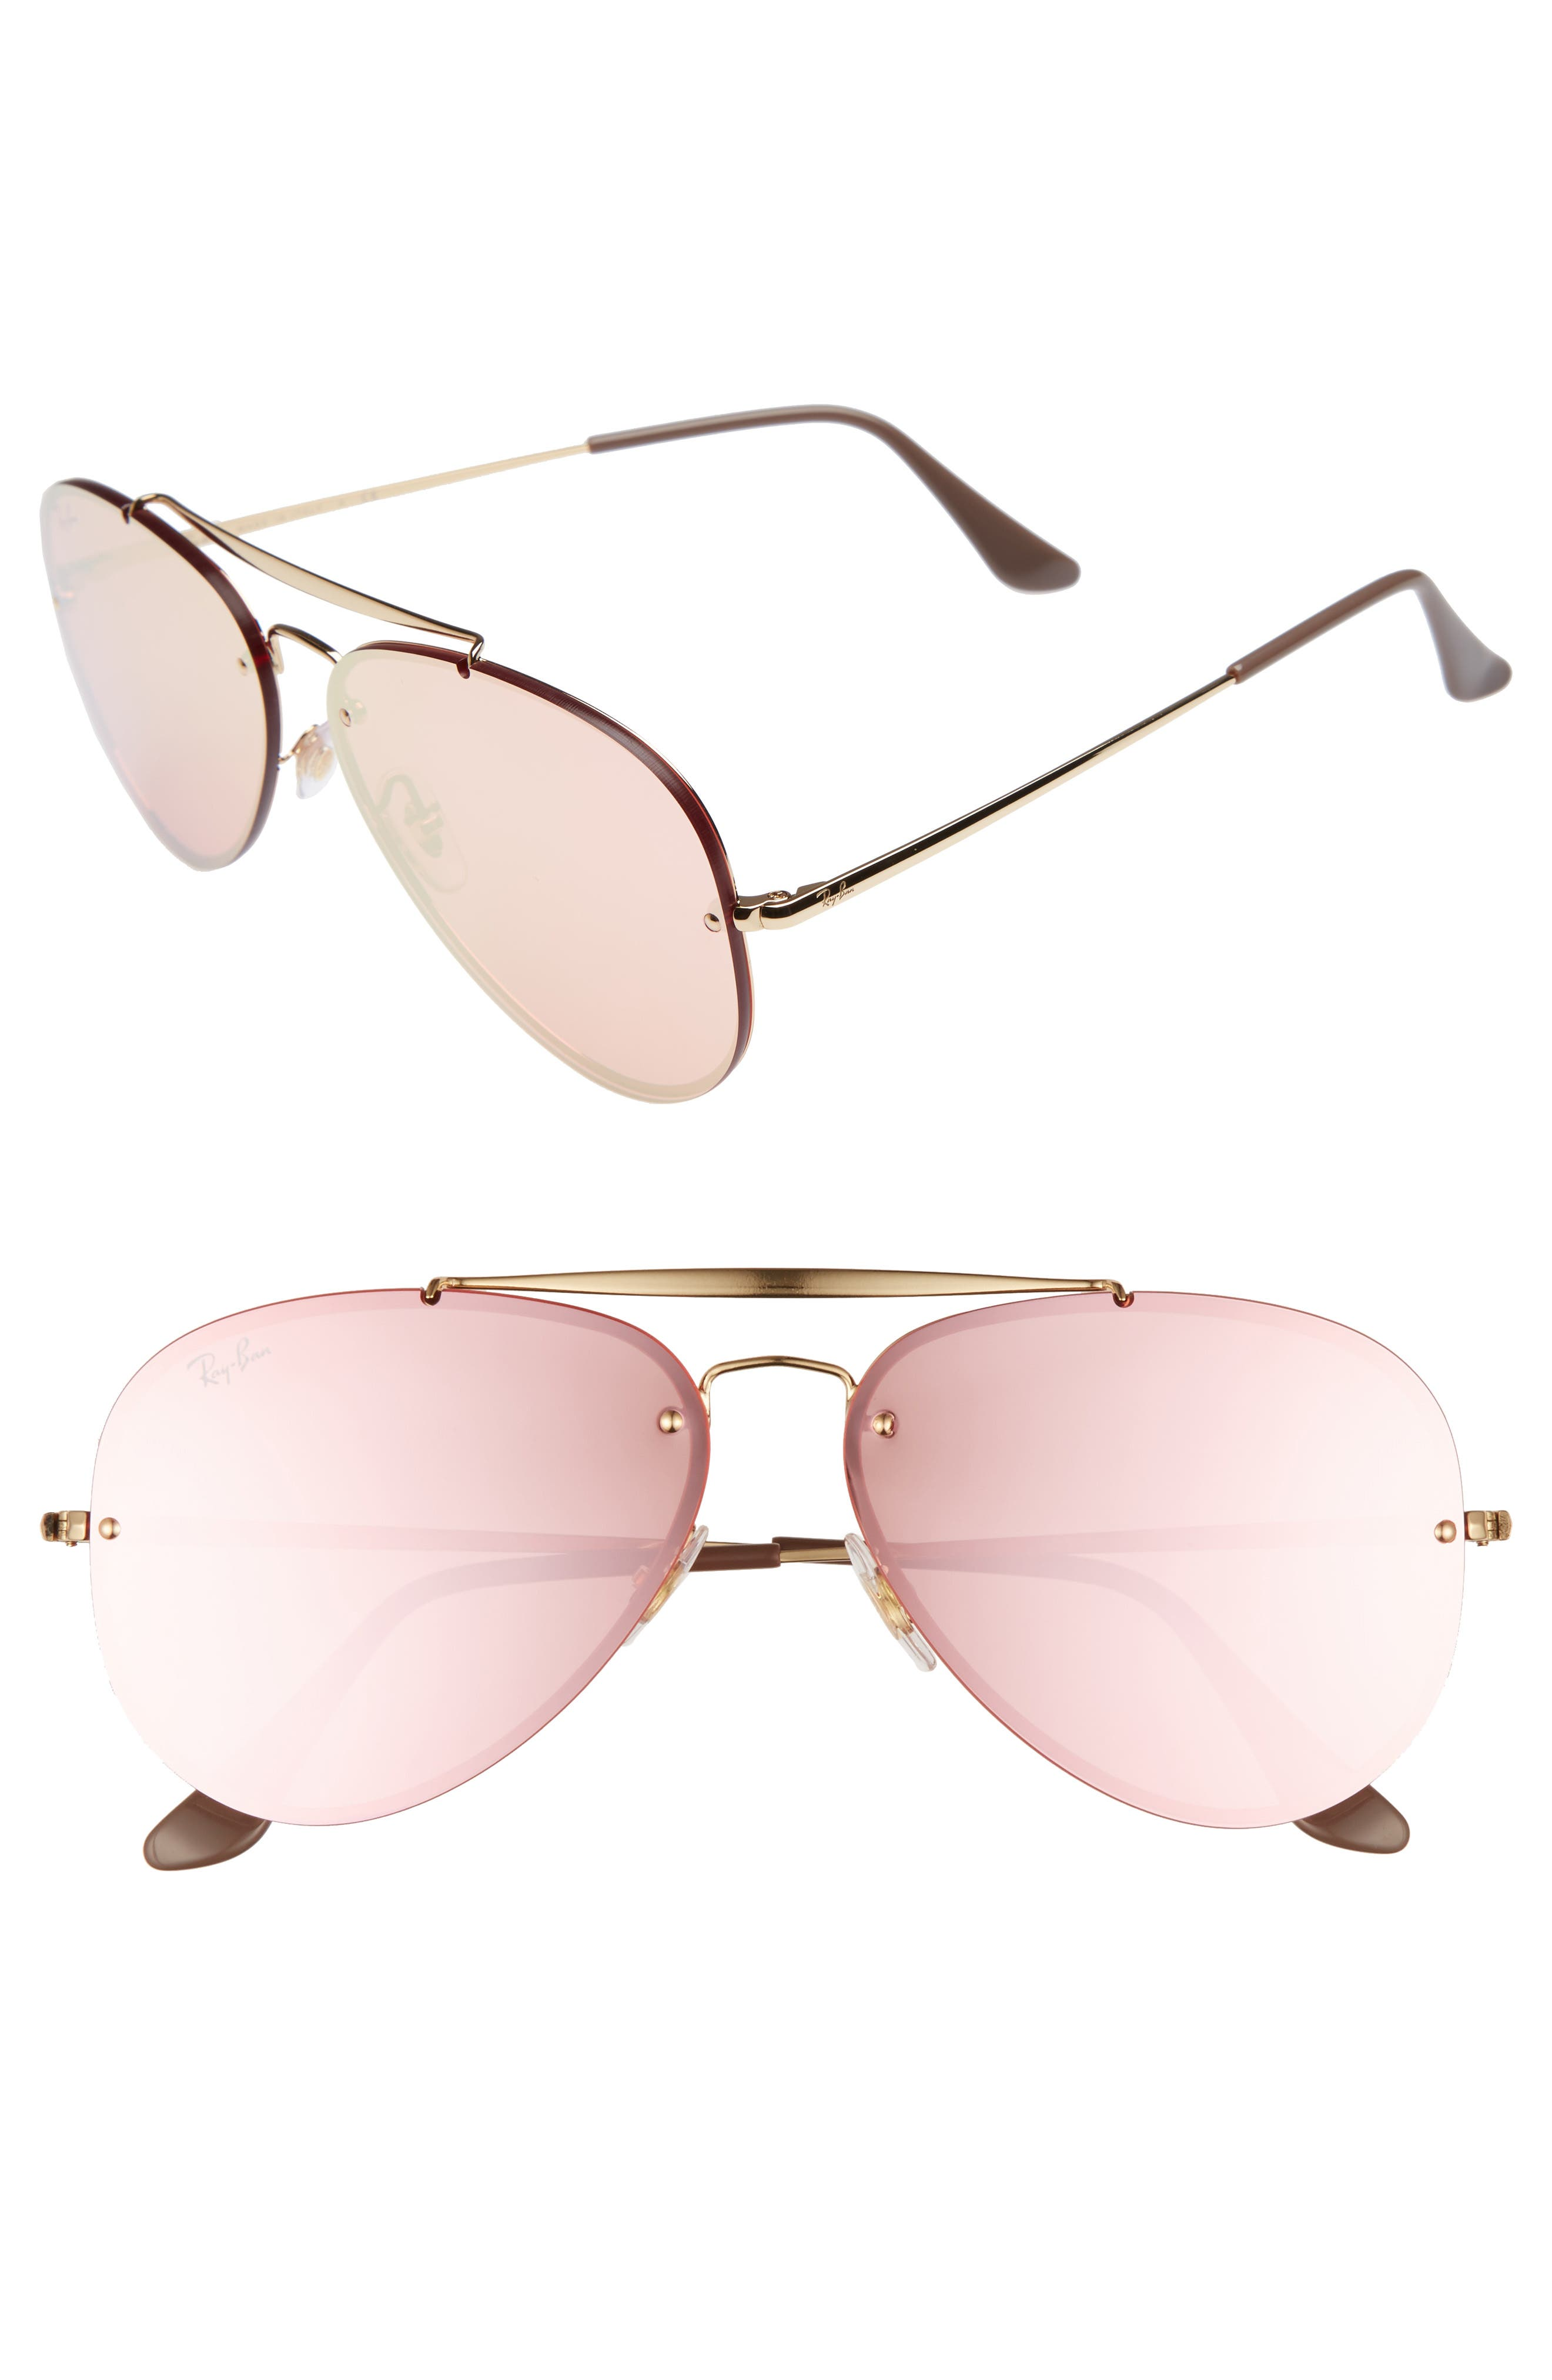 61mm Mirrored Lens Aviator Sunglasses,                             Main thumbnail 1, color,                             Gold Pink